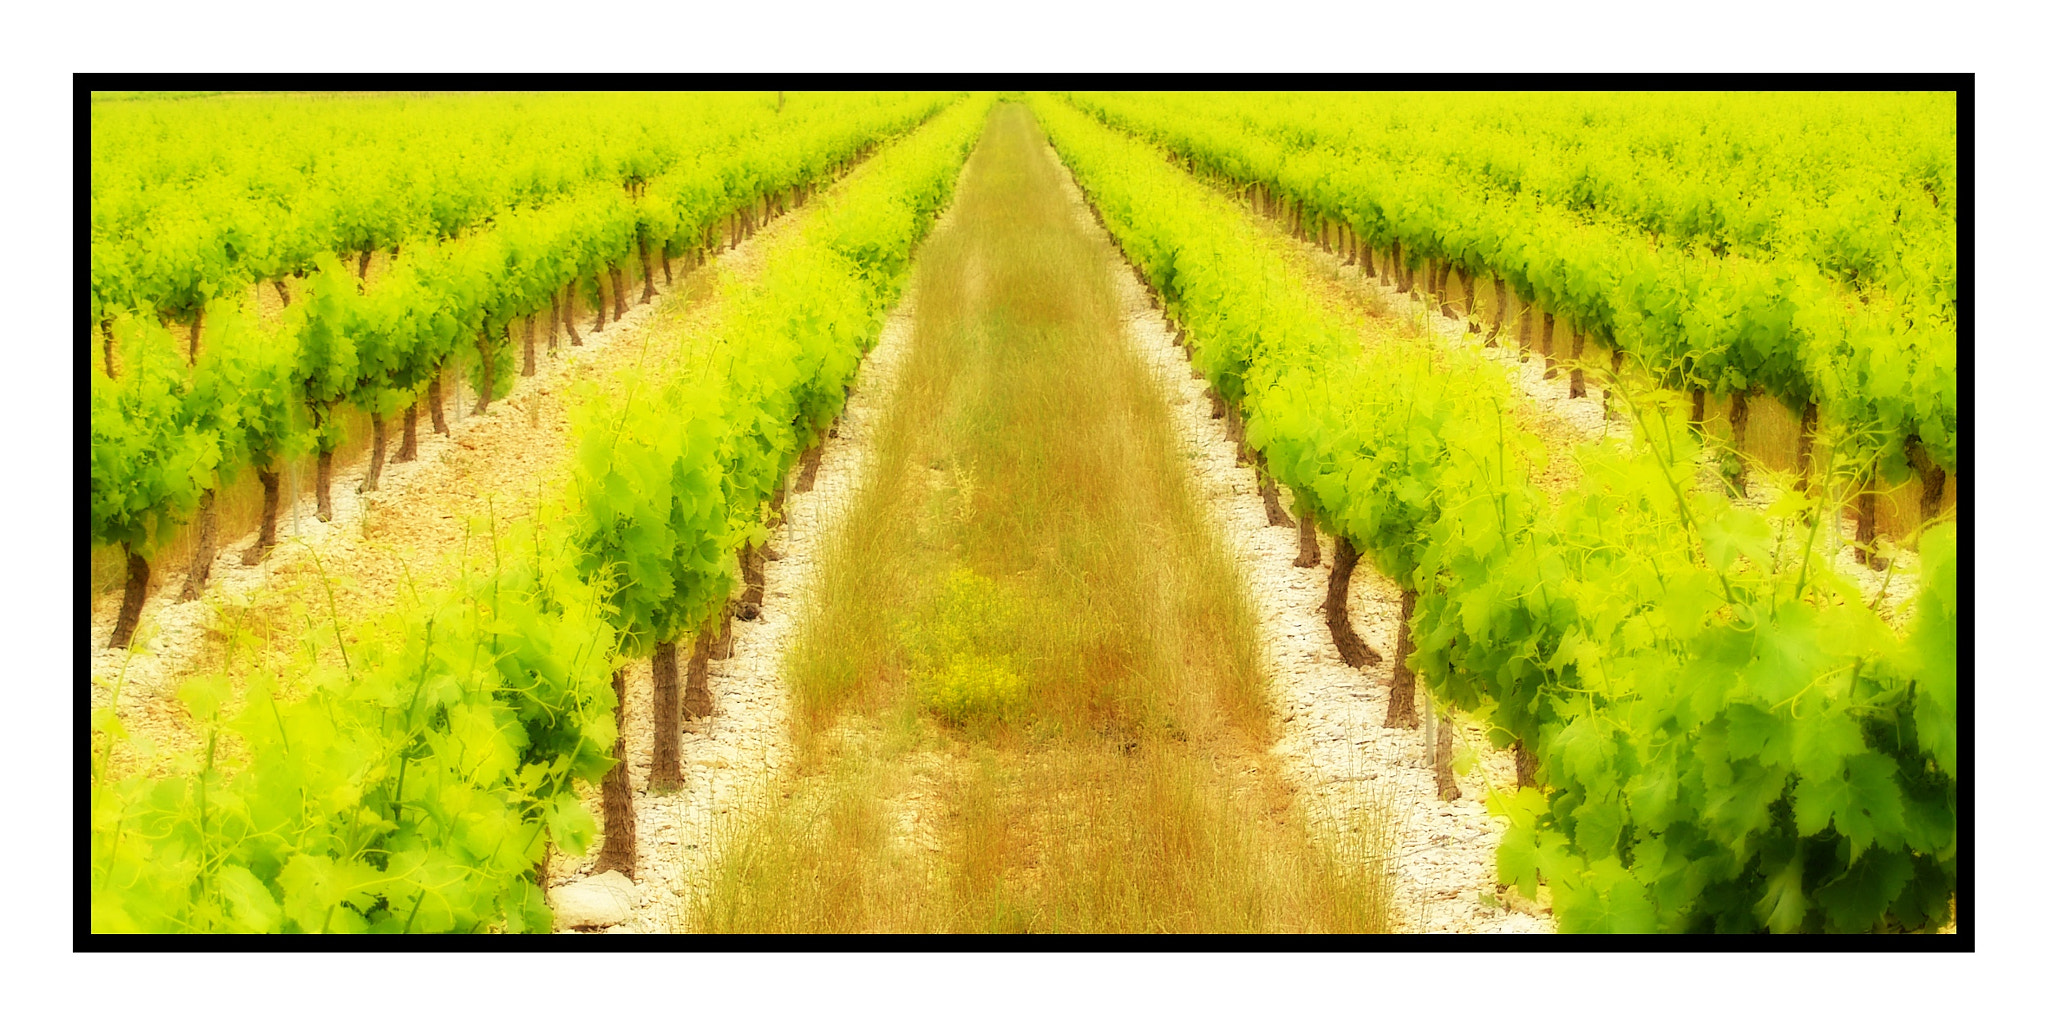 Photograph The Vineyard of your dreams! by Anthony Reed on 500px